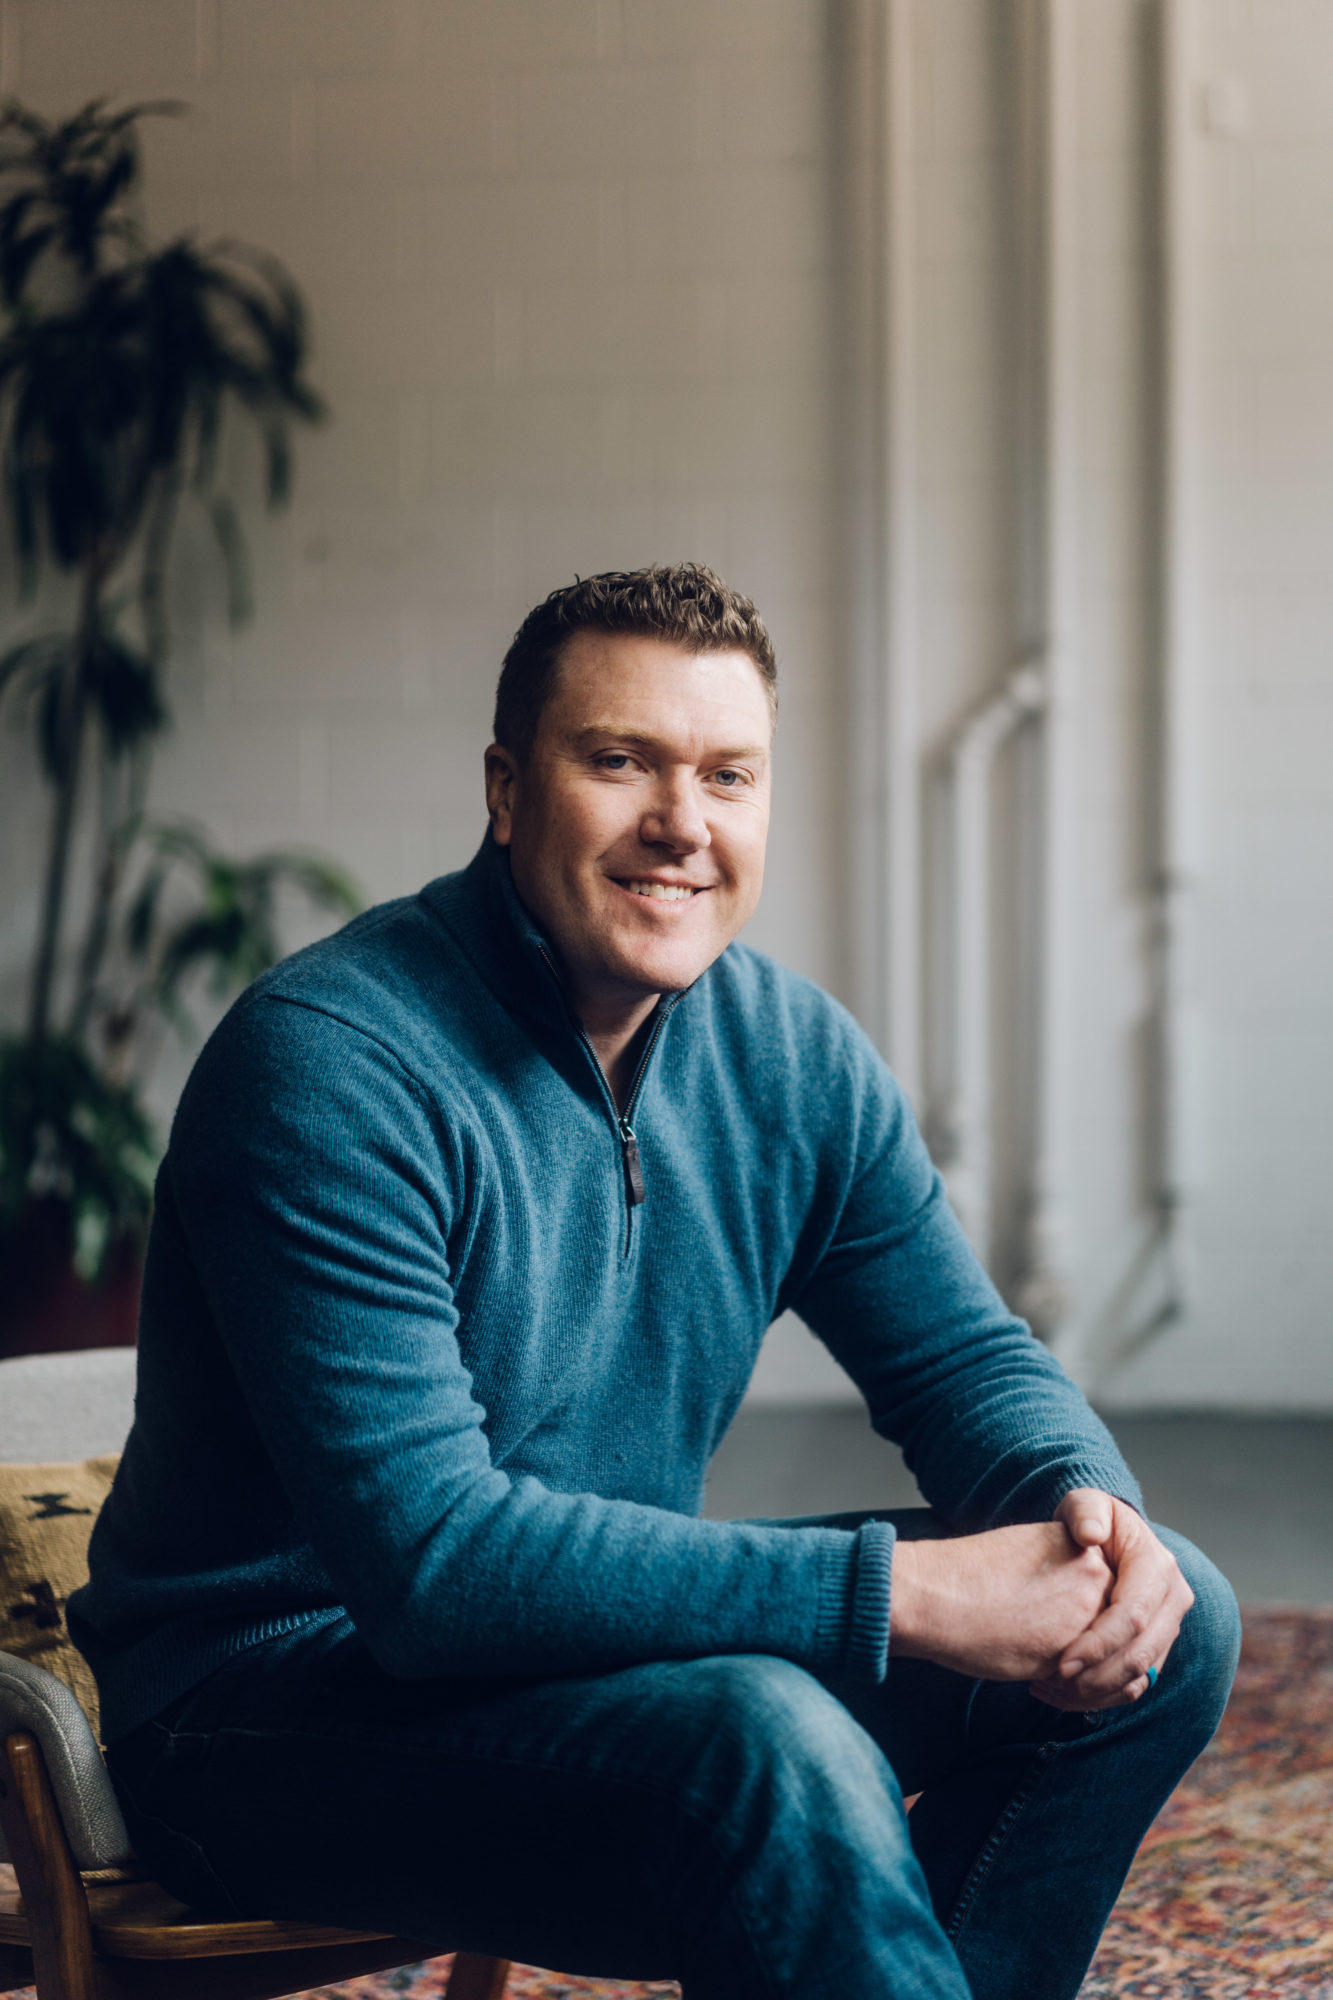 In our October Founder Series, Johnny Hanna shares the story of how he co-founded Homie and changed real estate forever.